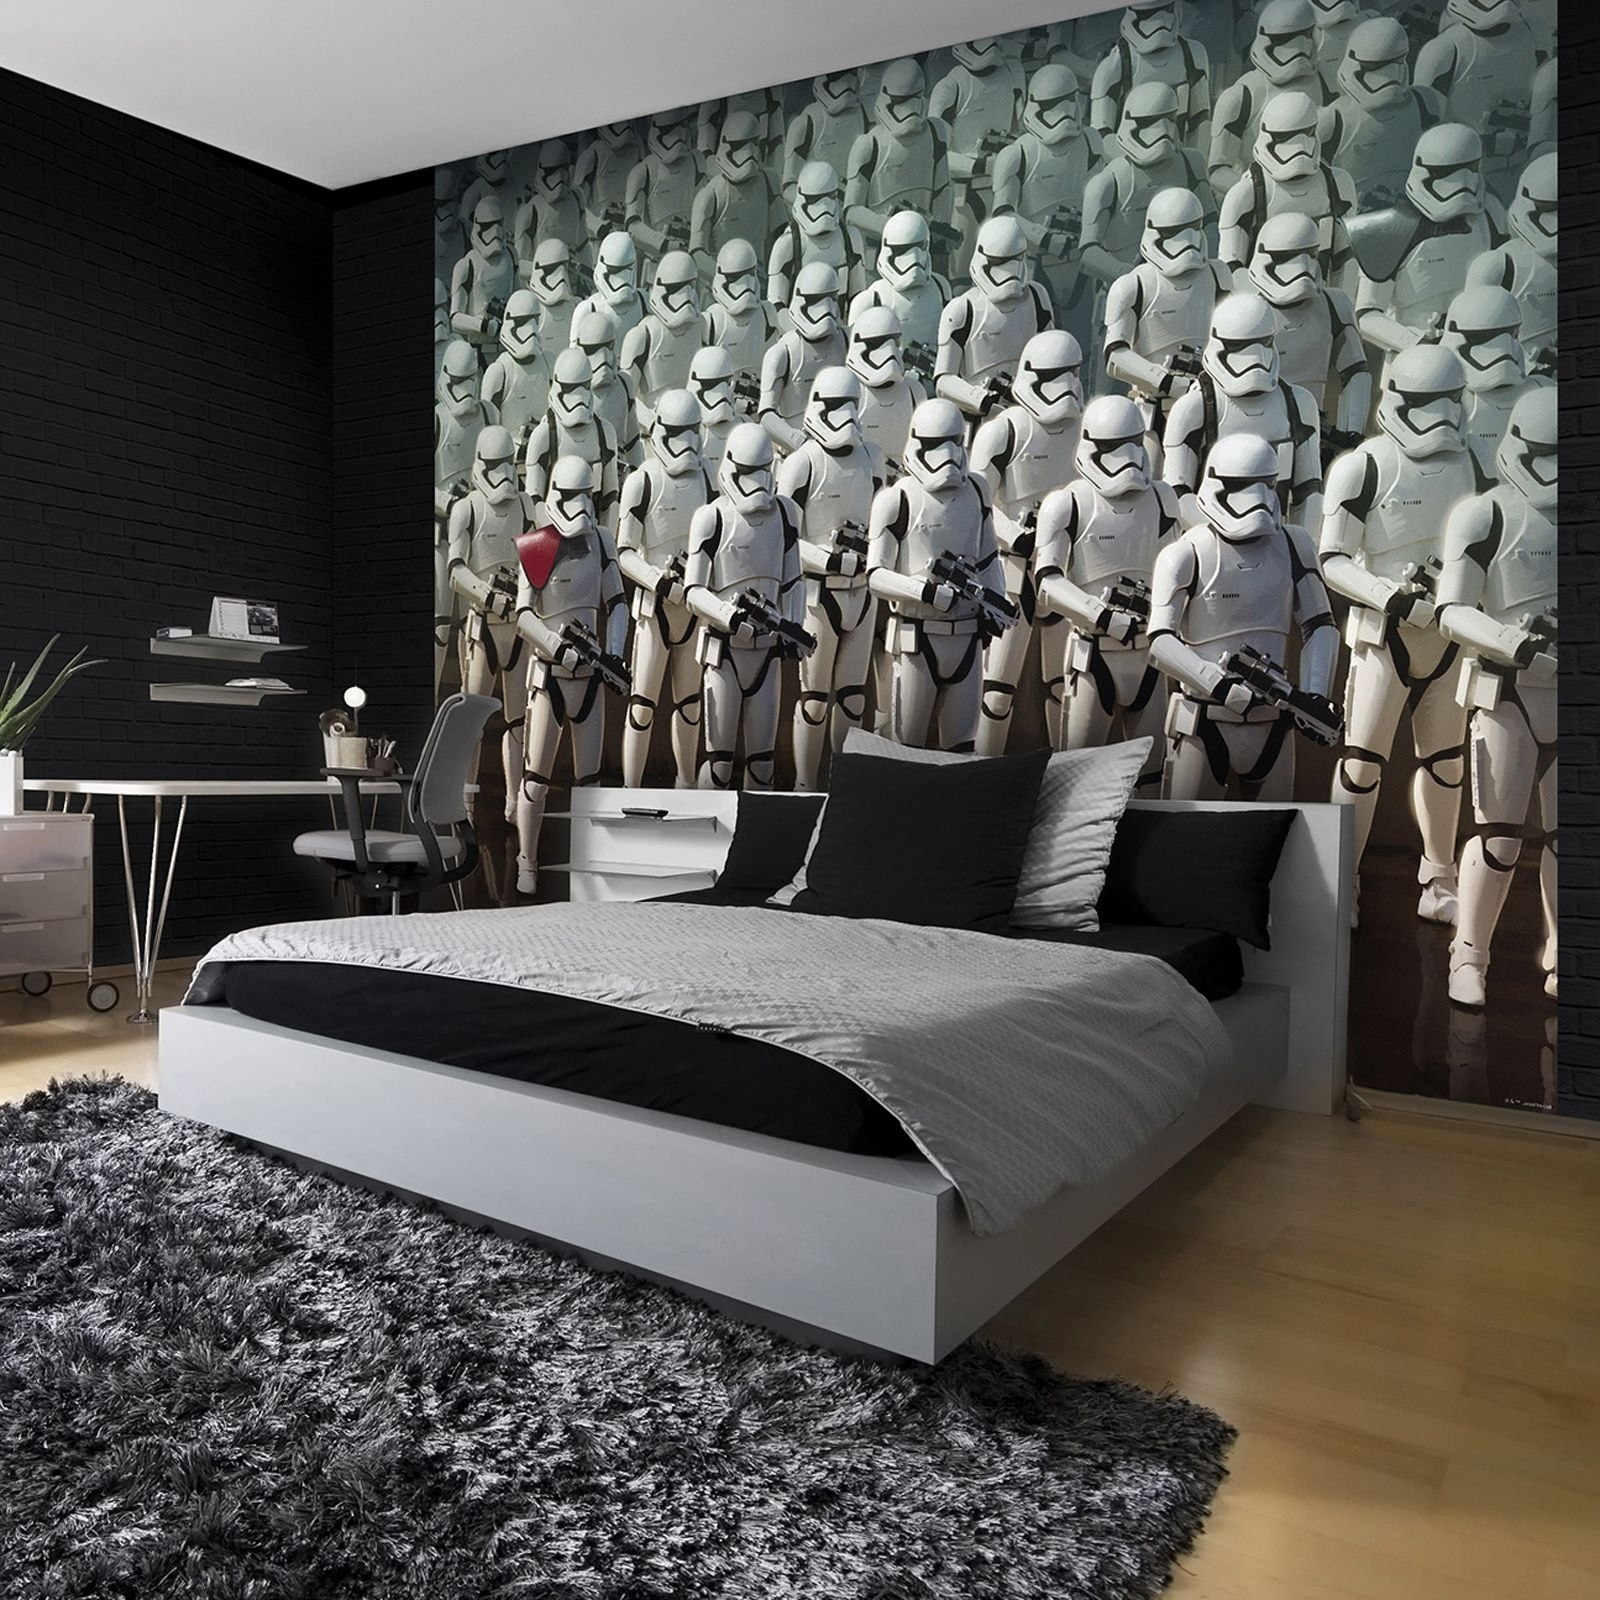 Star Wars Wall Art Bedroom : Andrews Living Arts – Fantastic Room Intended For Most Current Star Wars Wall Art (View 13 of 15)